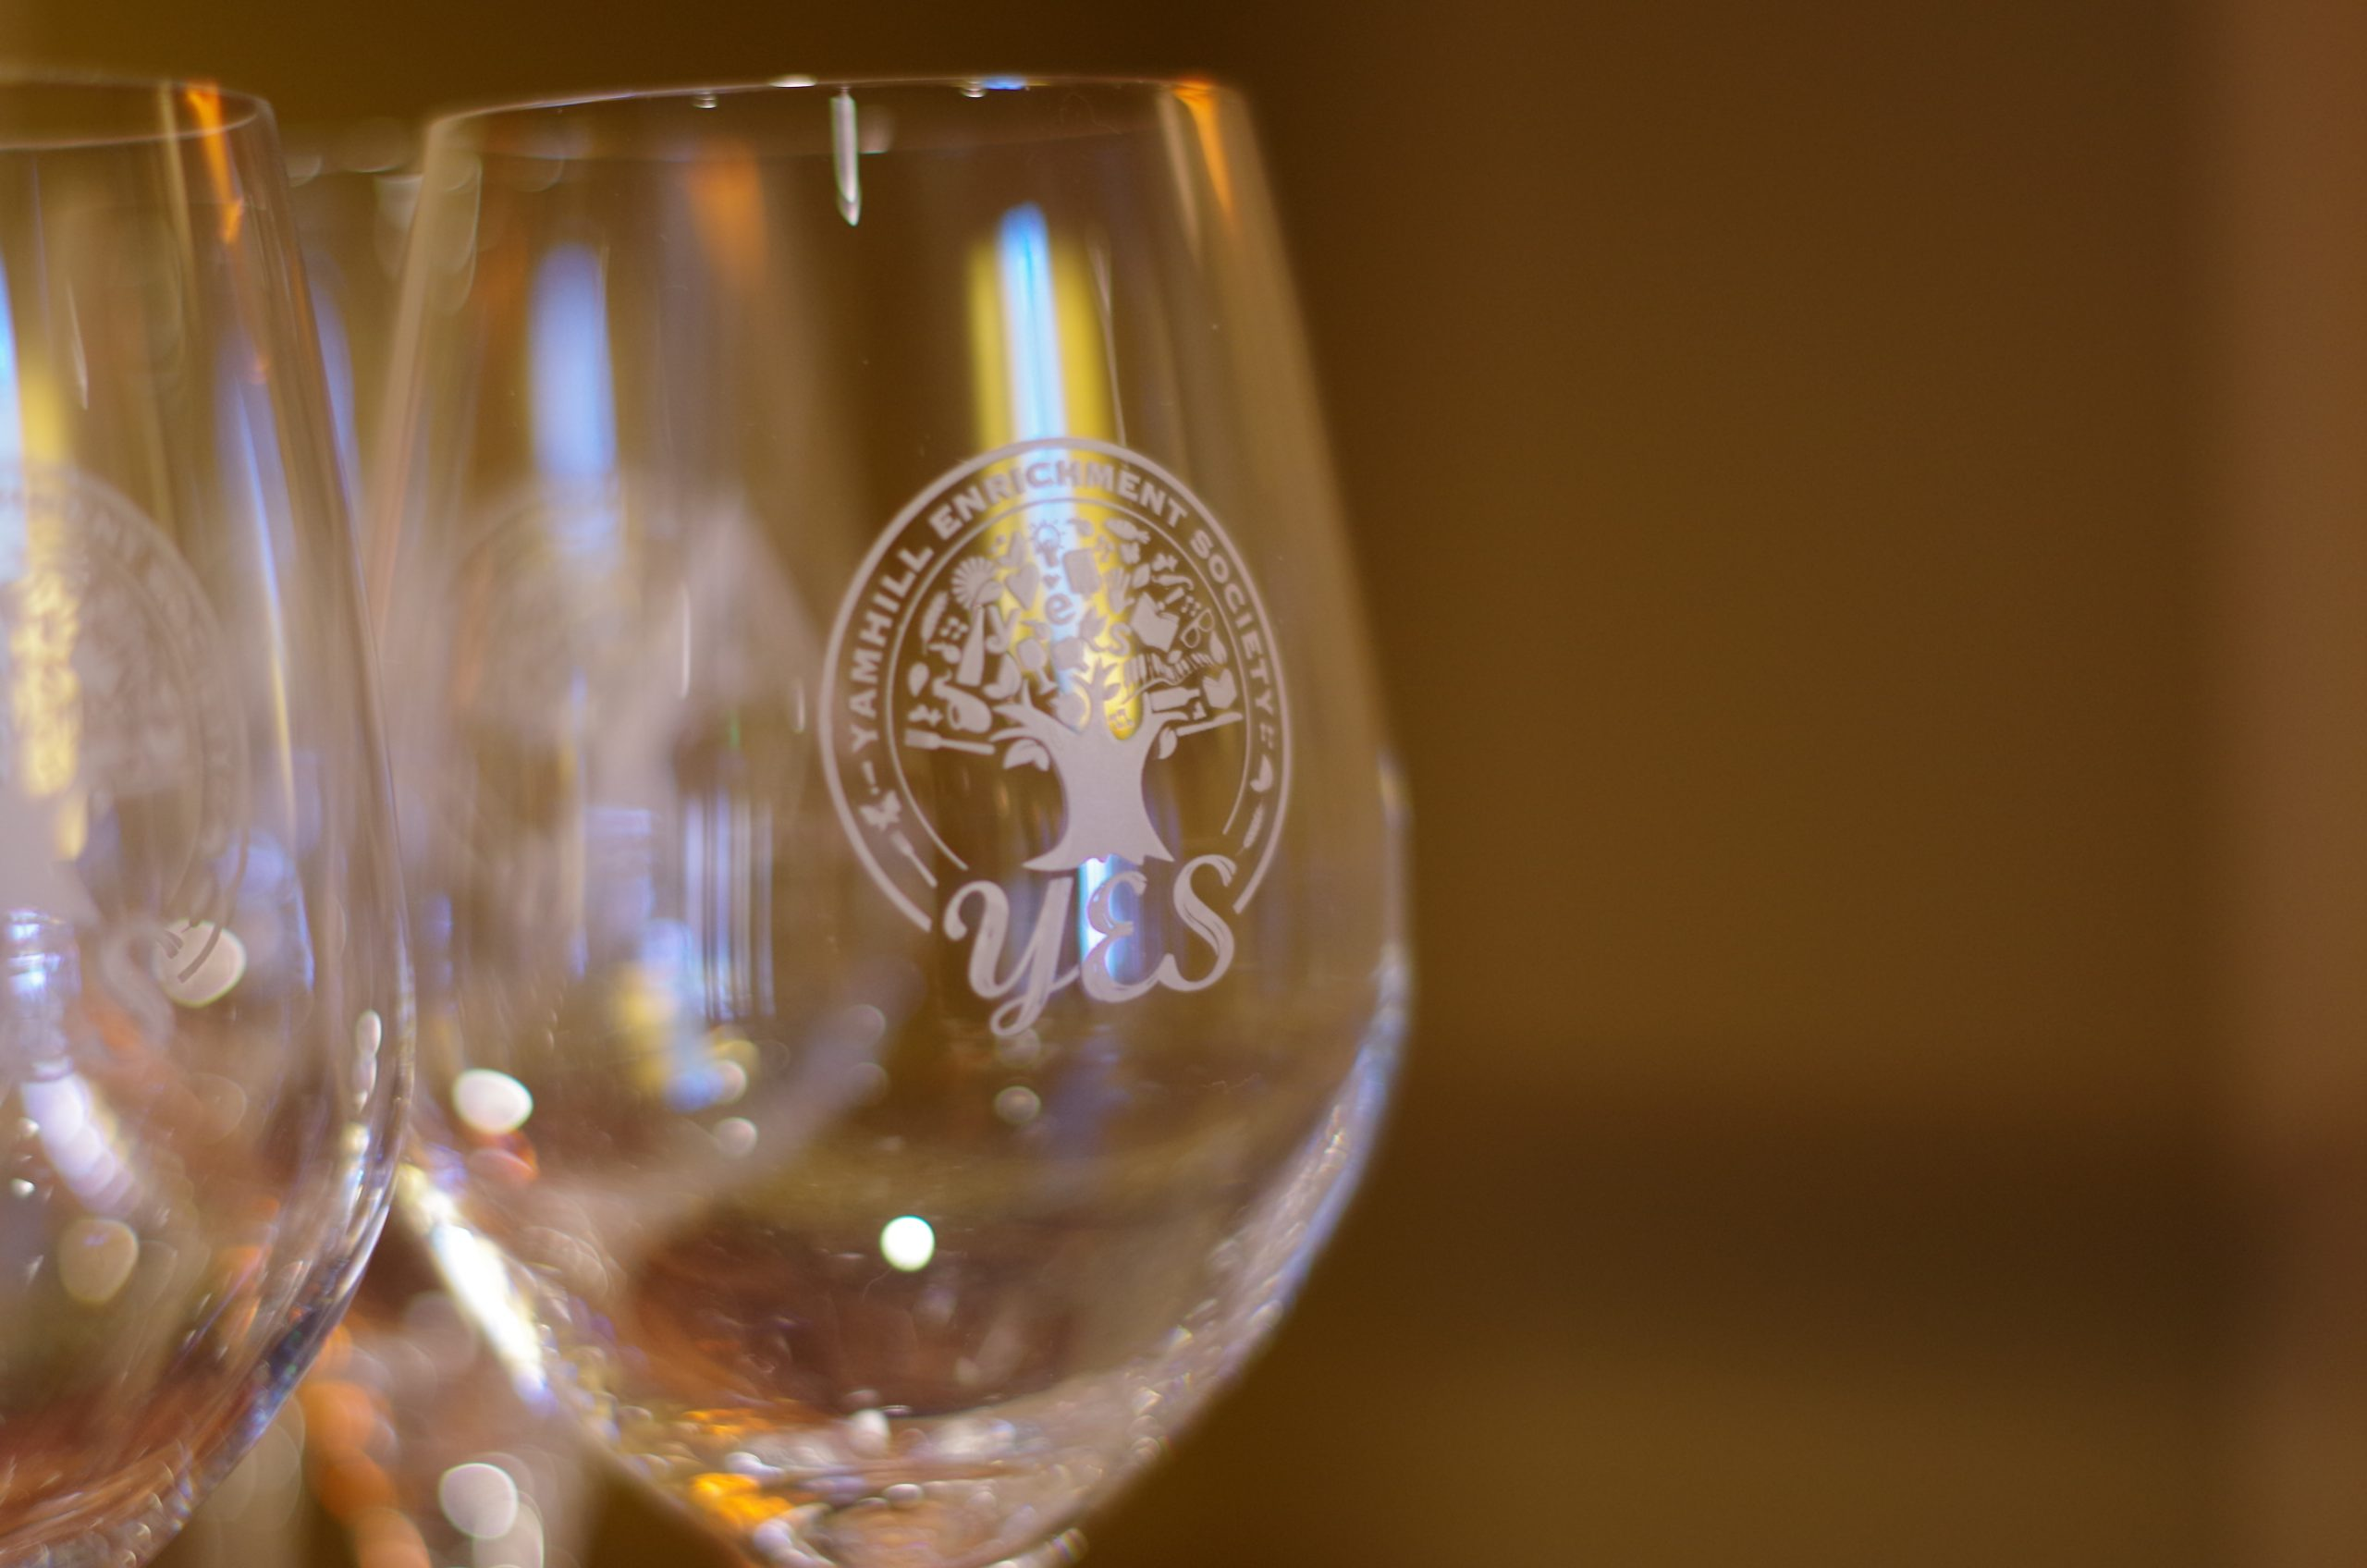 Wine glasses with Yamhill Enrichment Society - YES logo on them